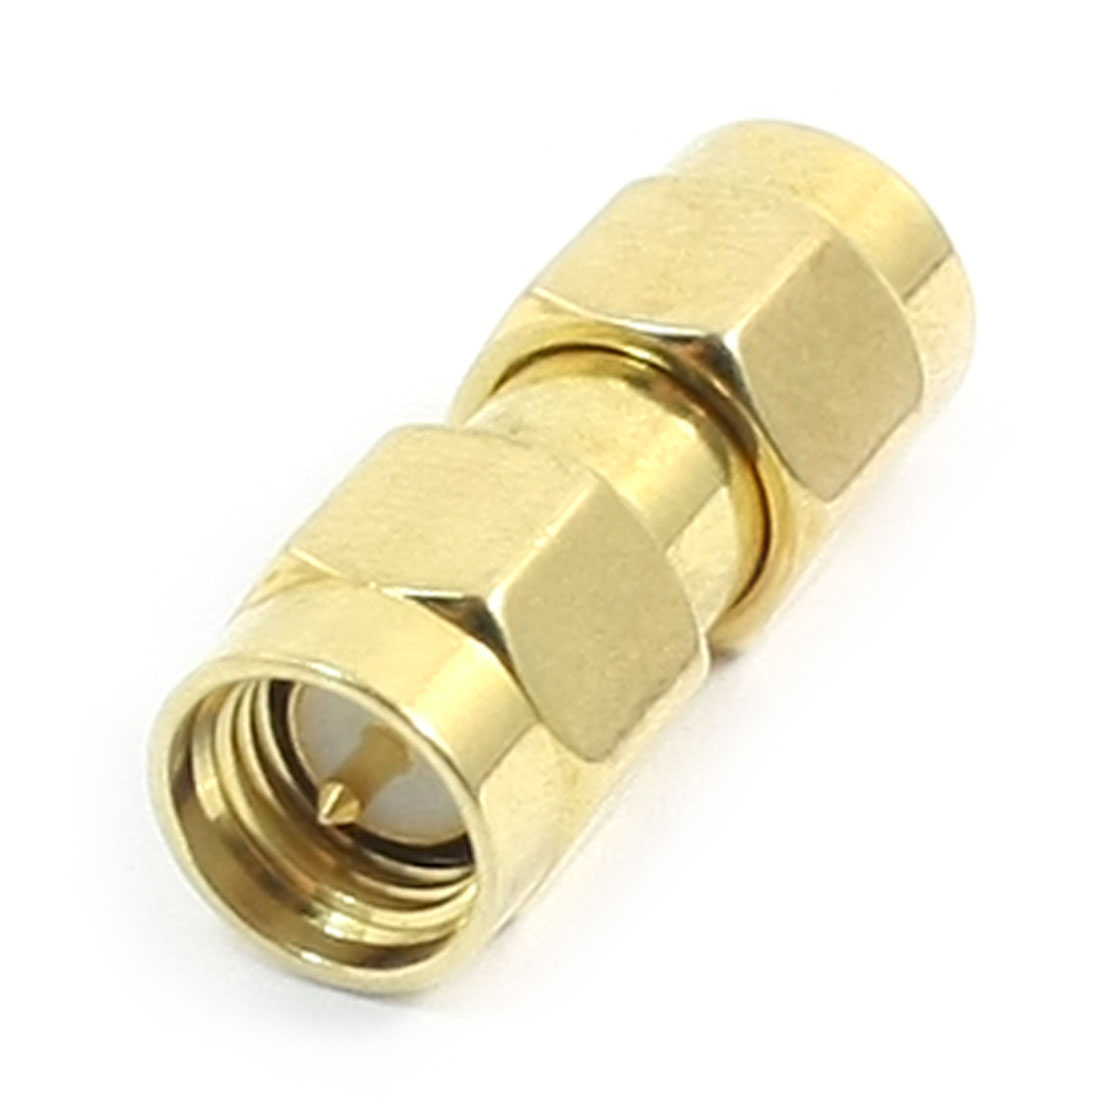 SMA Male to Male Jack Gold Tone Metal Antenna Radio Interface Coaxial Connector Adapter